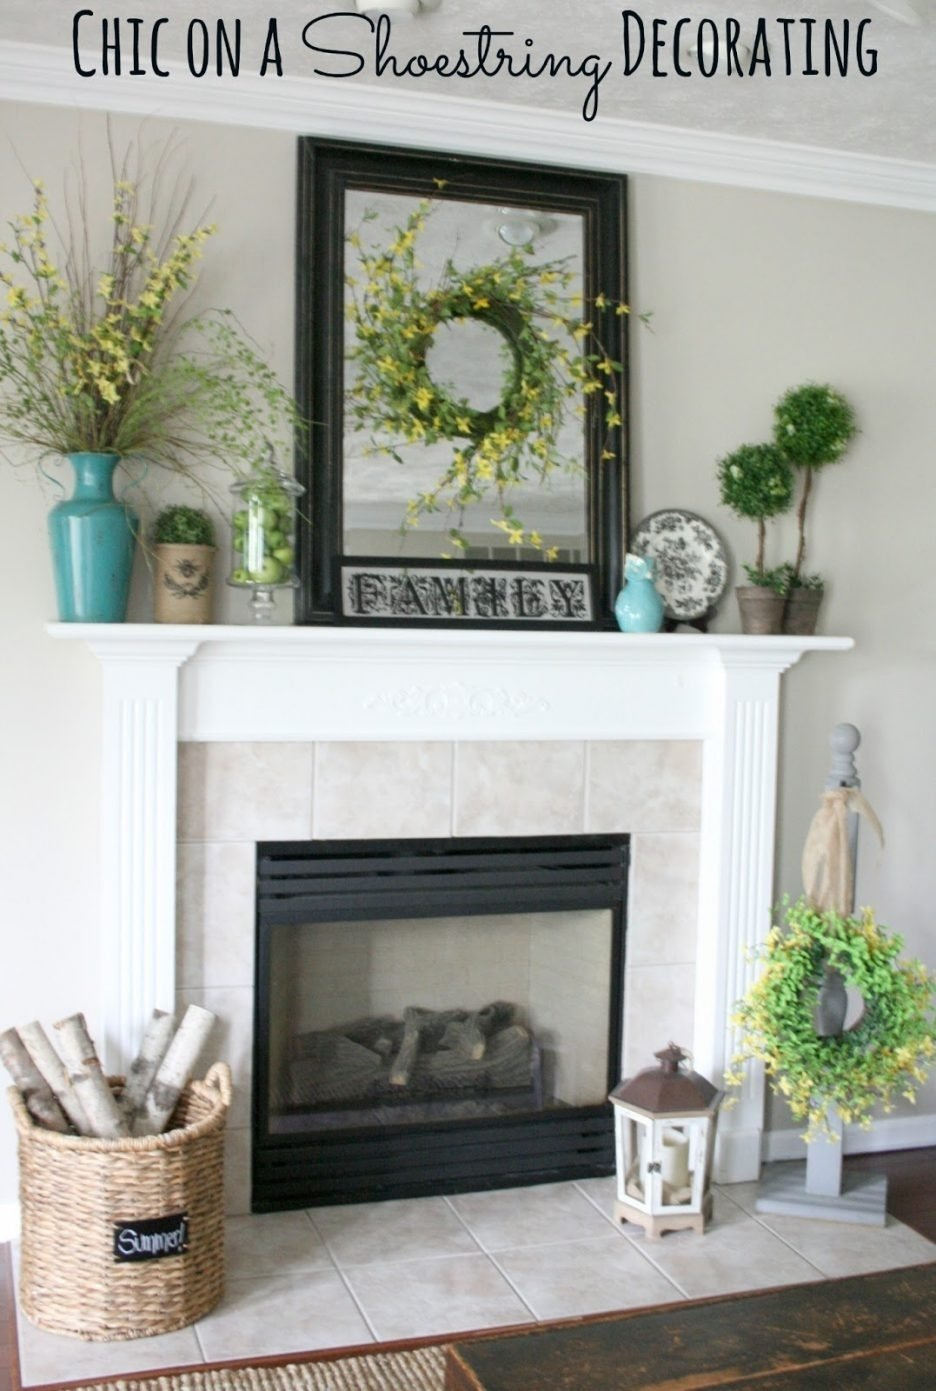 10 Spectacular Decorating Ideas For Fireplace Mantel electric wall fireplace ideas simple fire surround ideas fireplace 2020